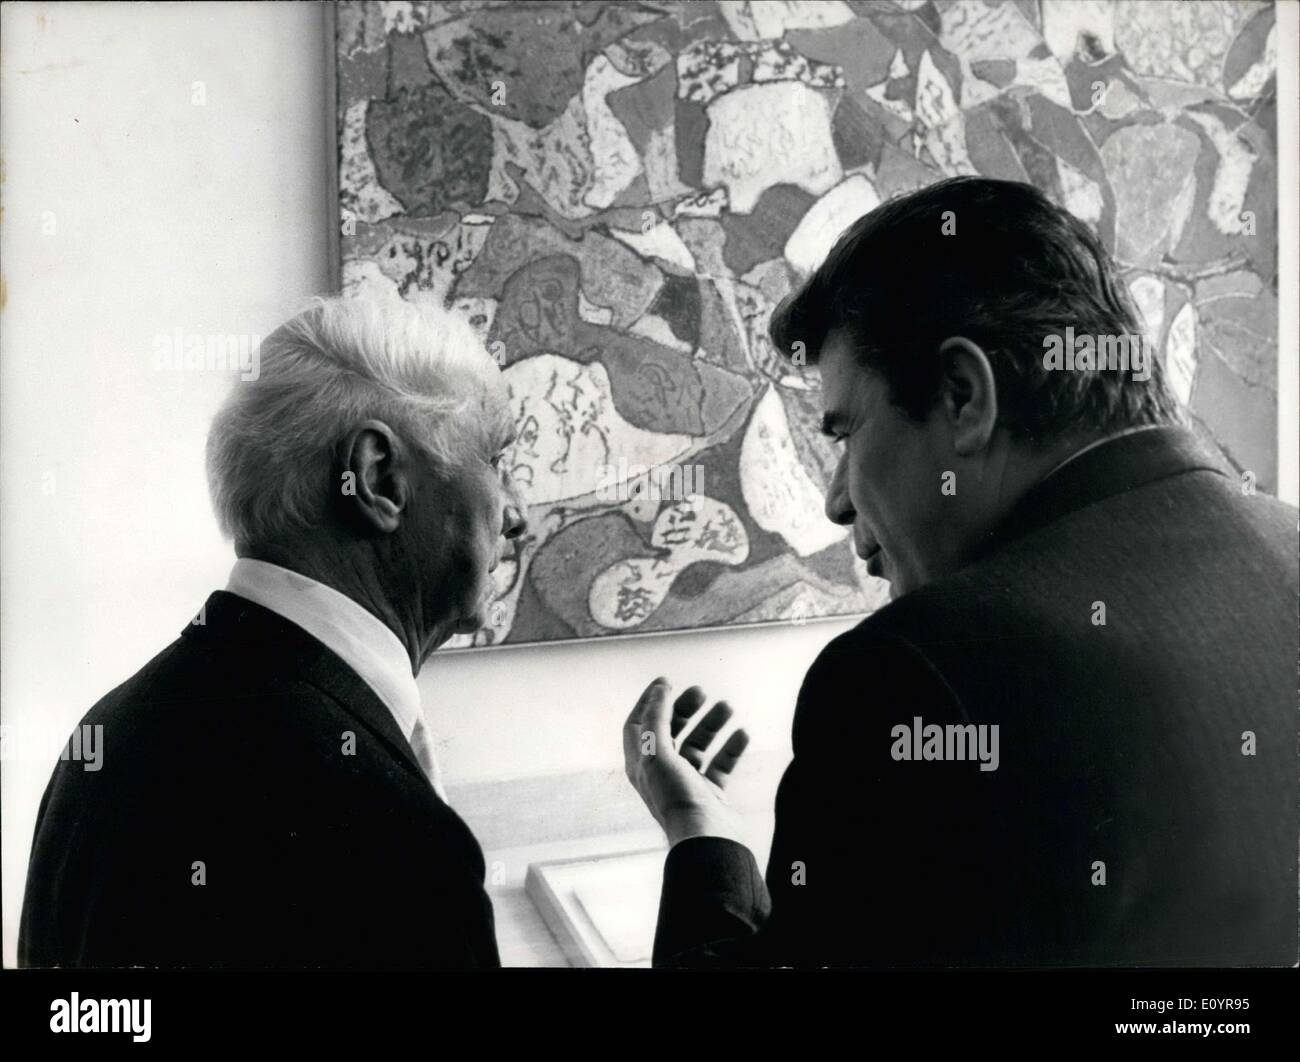 Apr. 02, 1971 - Celebrating his 80th birthday in Paris, Maz Ernst attended the opening of a retrospective exposition of his artwork at the Orangery Museum. More than 100 paintings and sculptures evoke his 50-year artistic career in this exposition. Duhamel is the Minister of Cultural Affairs. - Stock Image